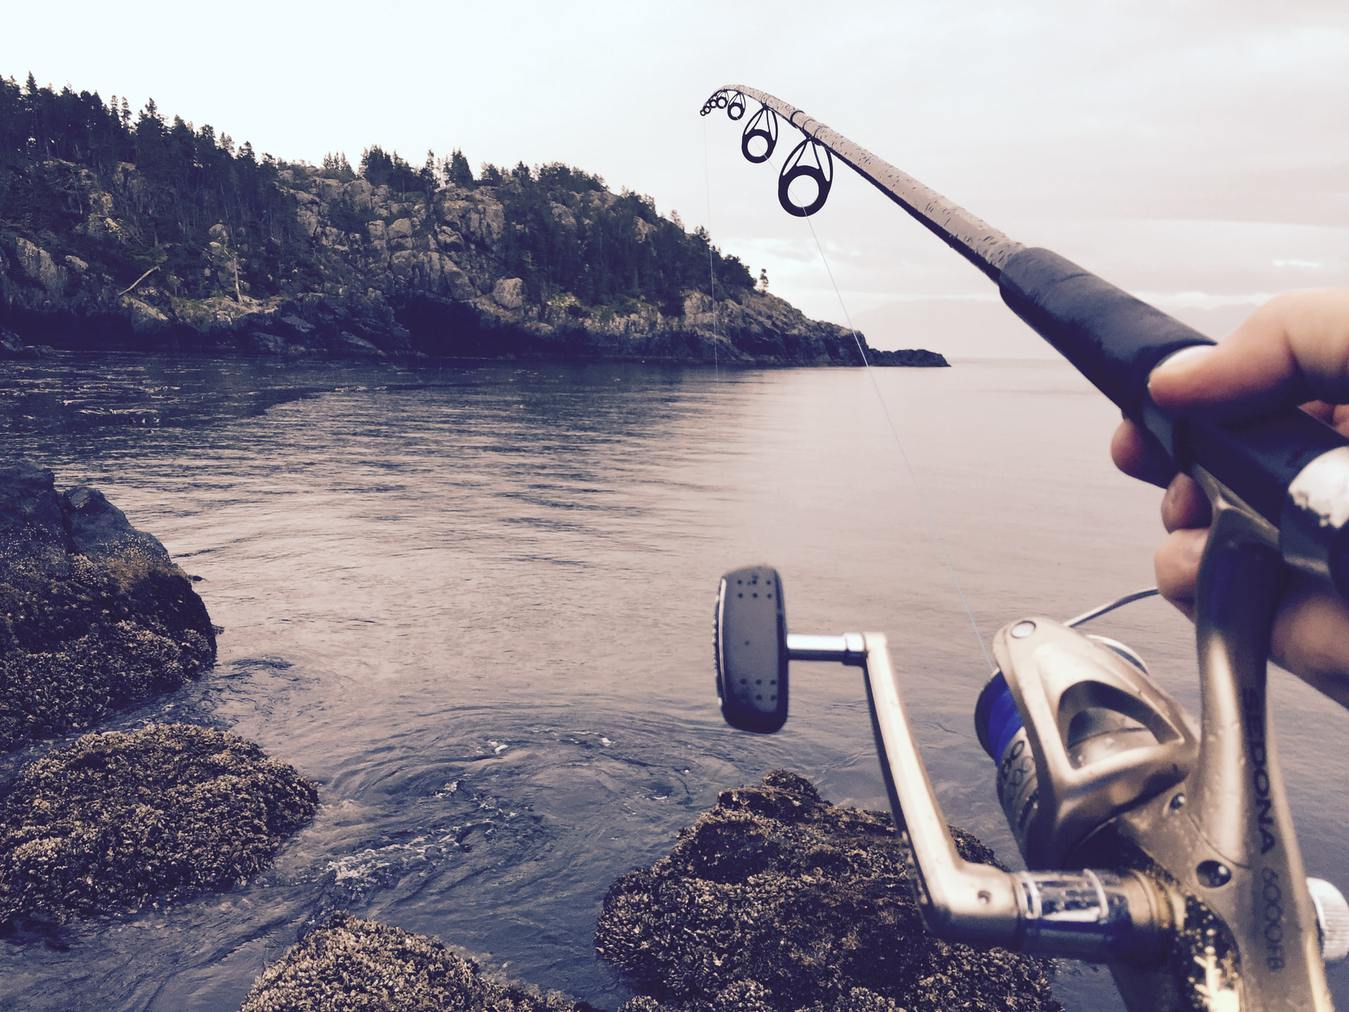 Fishing Rod in Water, Rocks